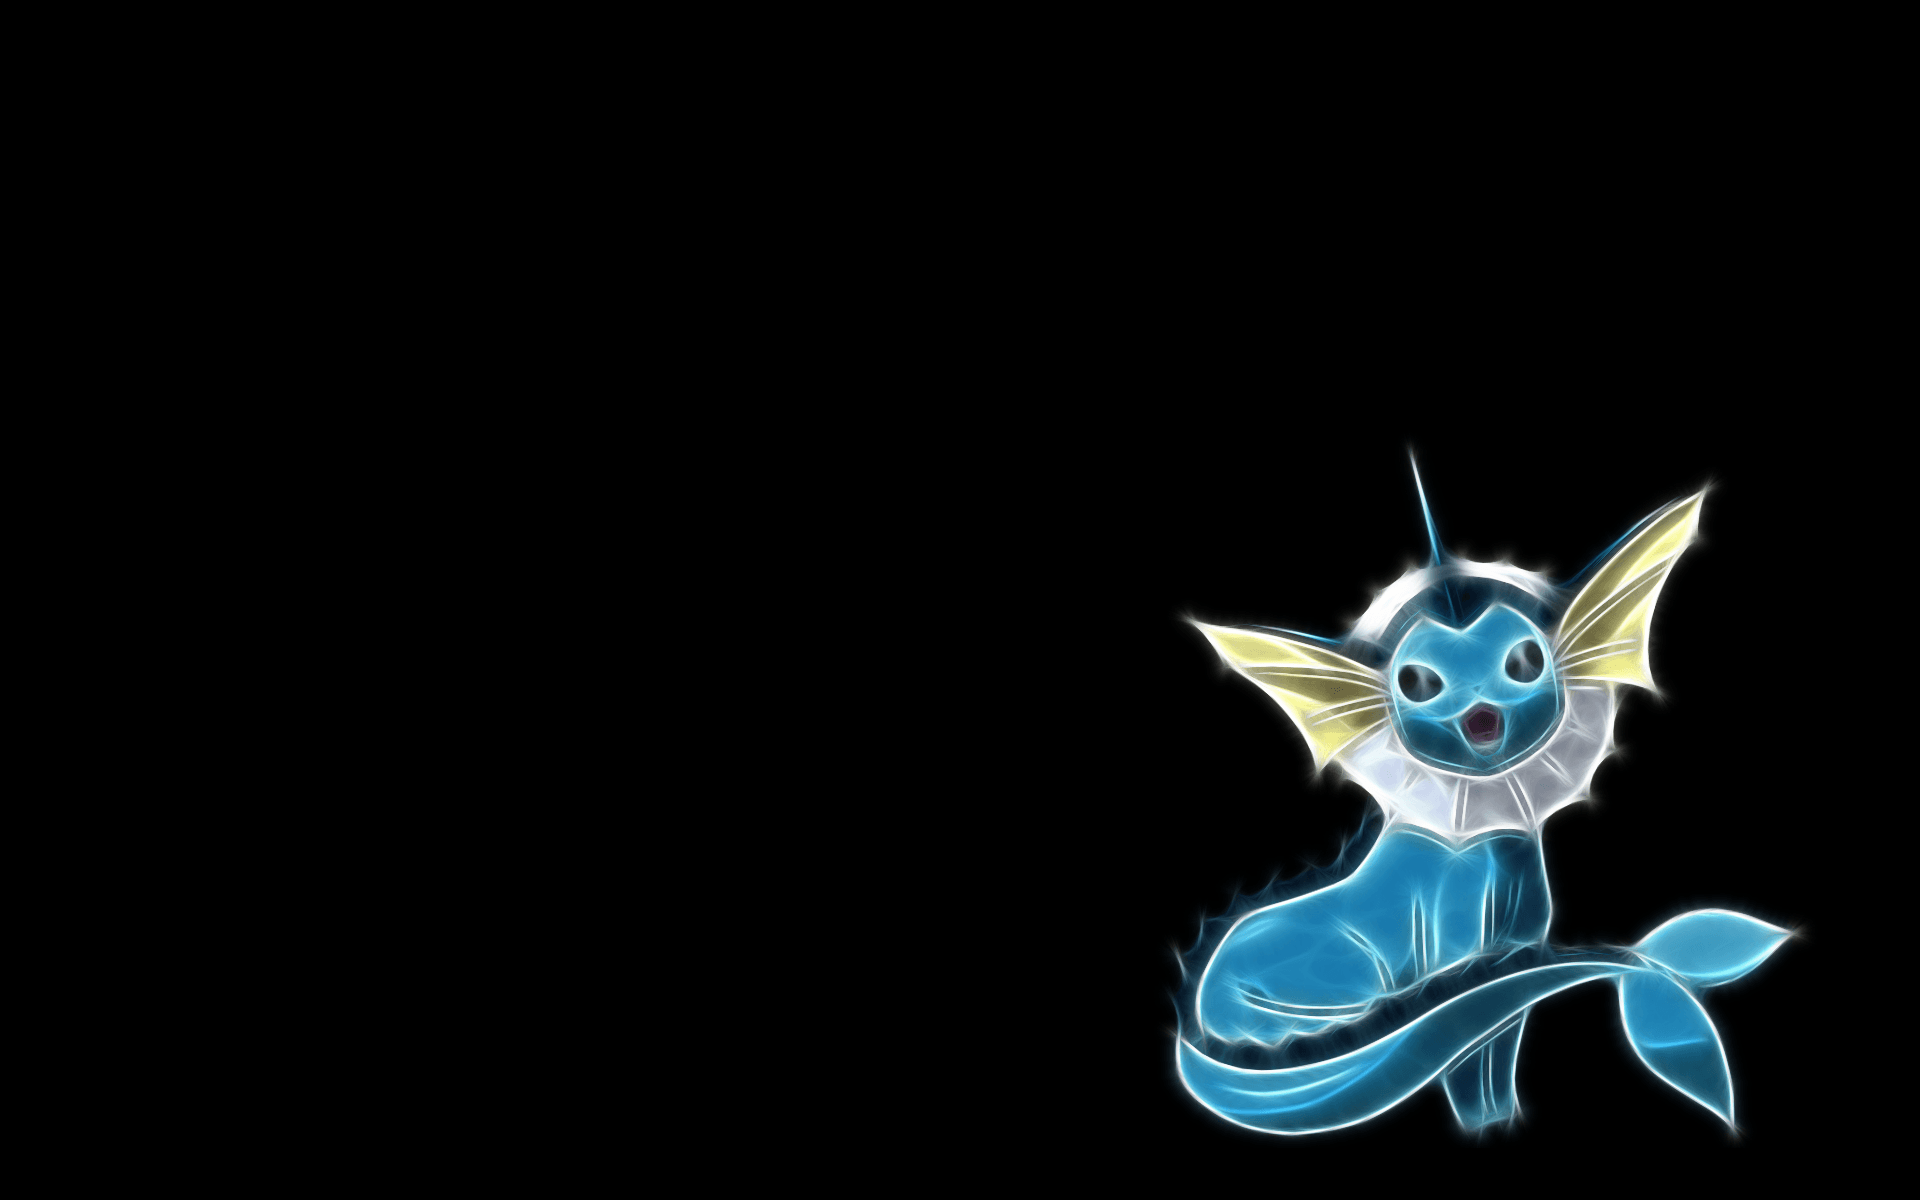 Vaporeon 566400 - WallDevil